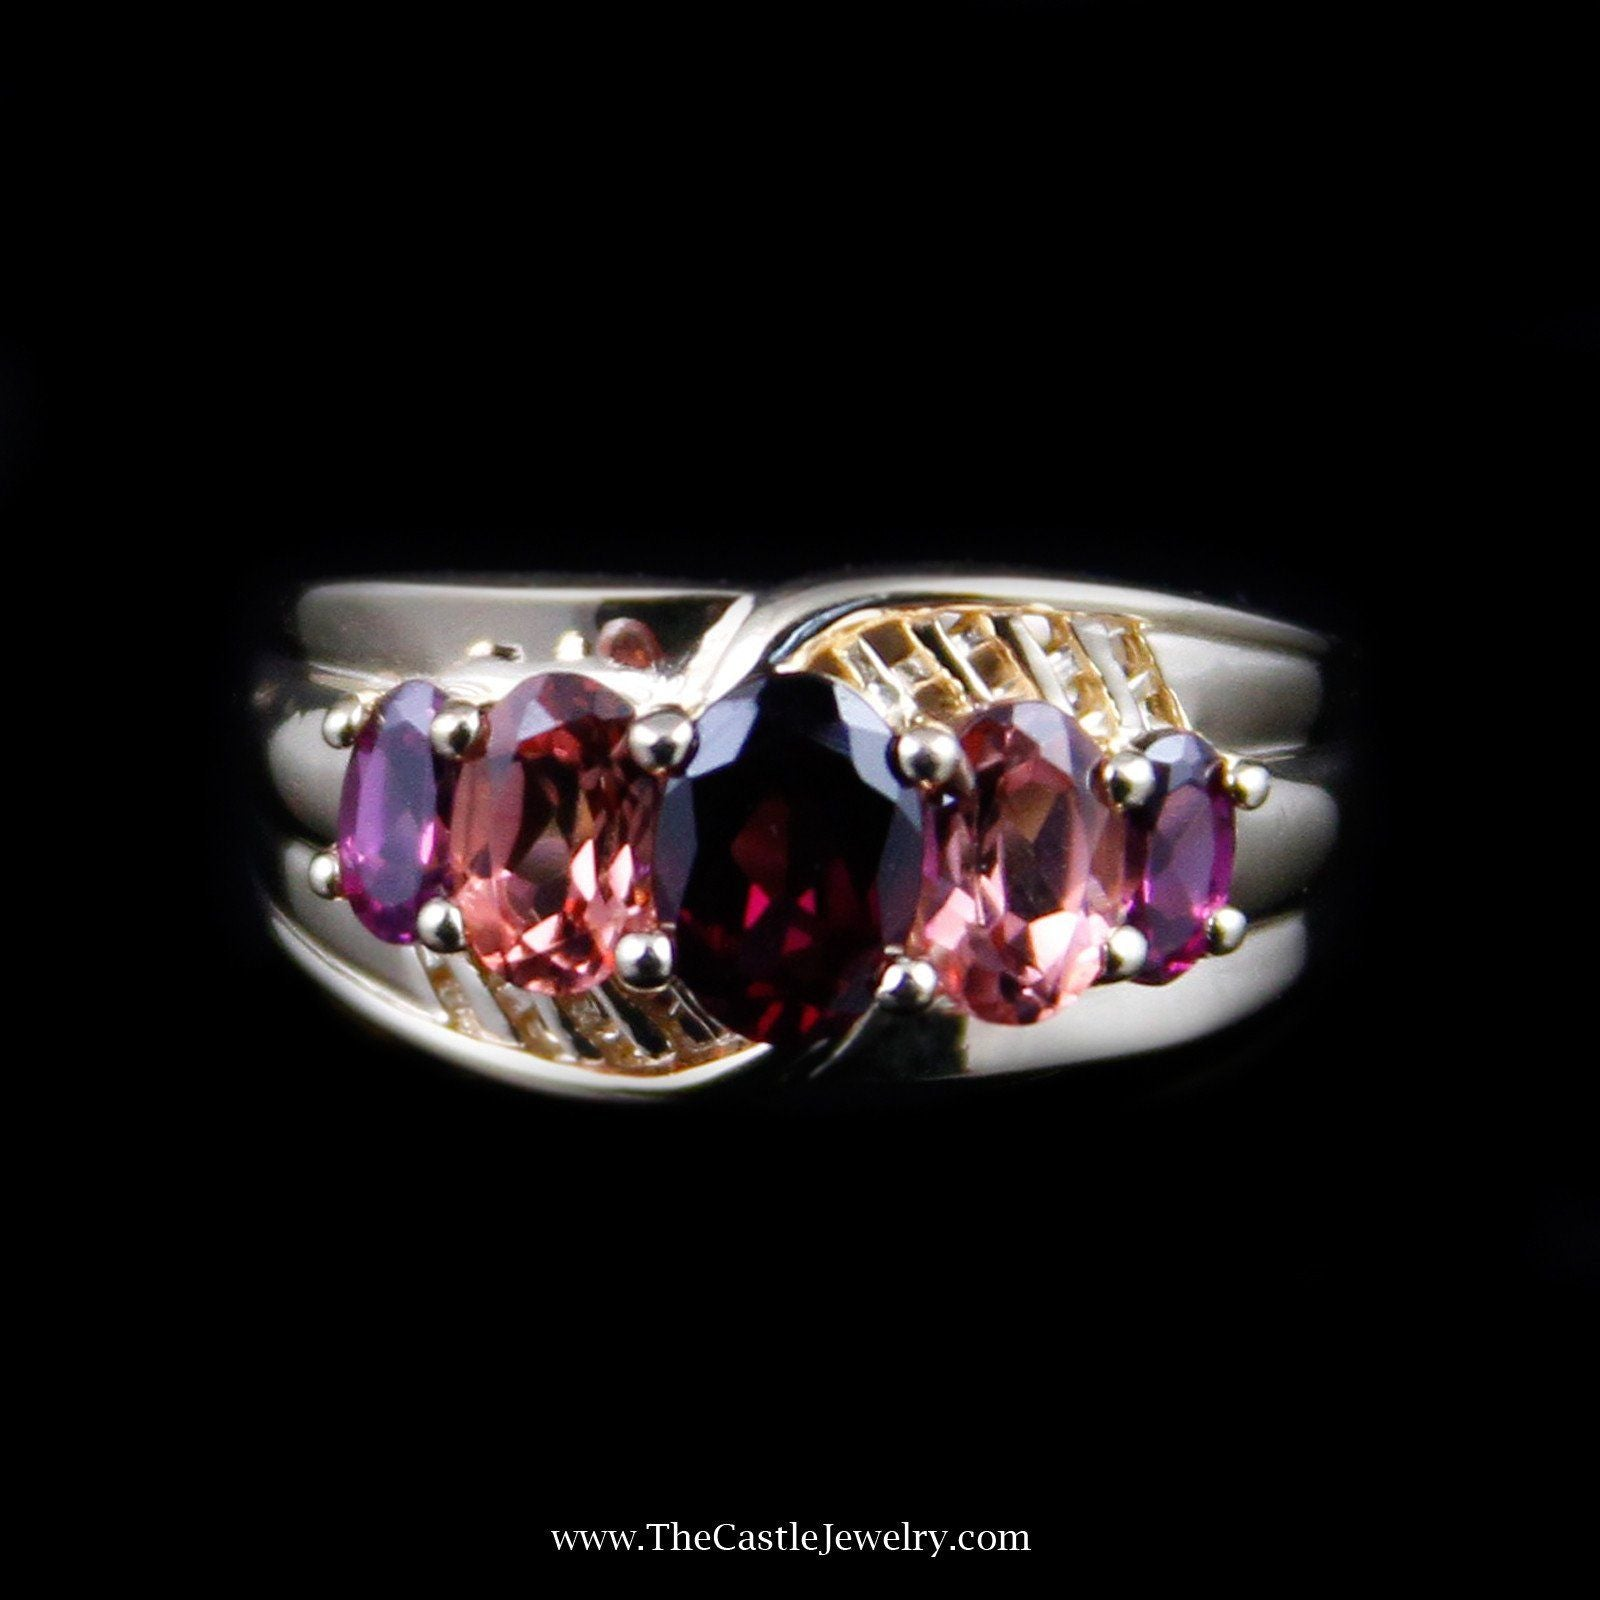 Beautiful Oval Rhodolite Garnet & Morganite Gemstone Ring in 14K Yellow Gold